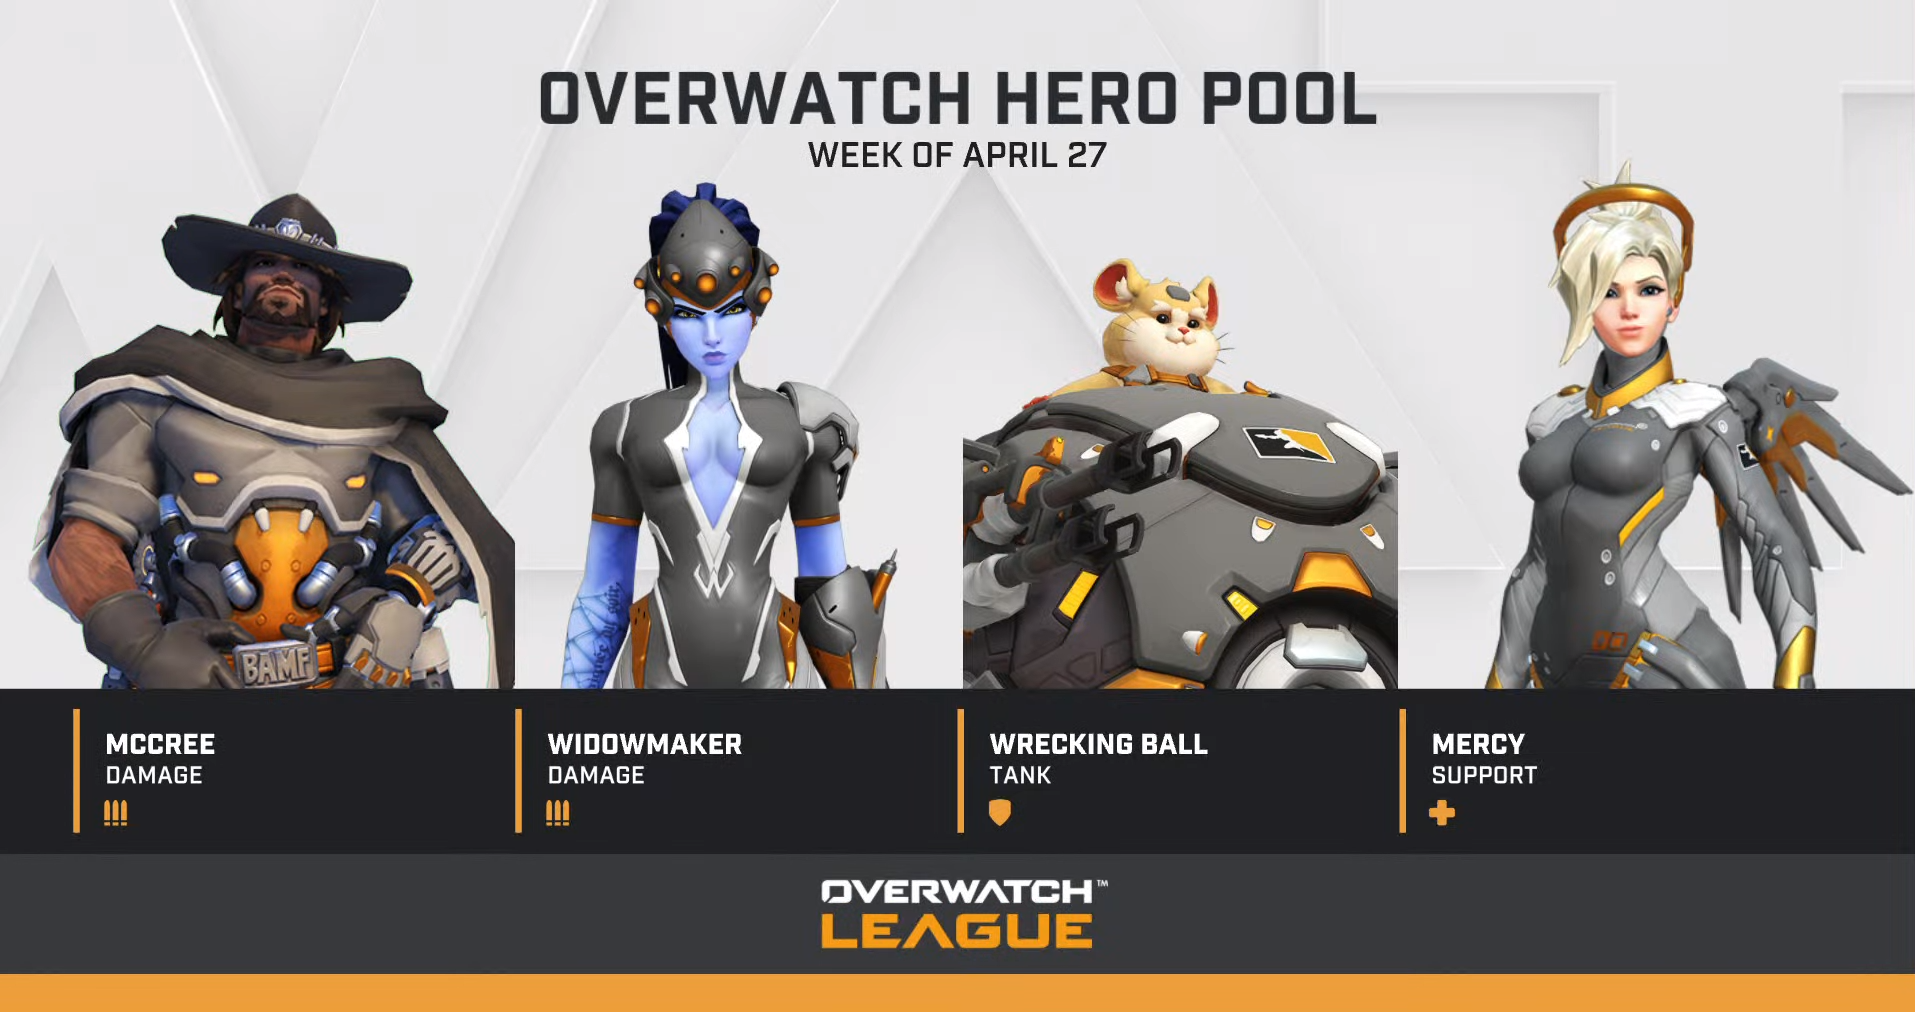 Overwatch April 27 hero pool bans McCree, Widowmaker, Wrecking Ball, and Mercy